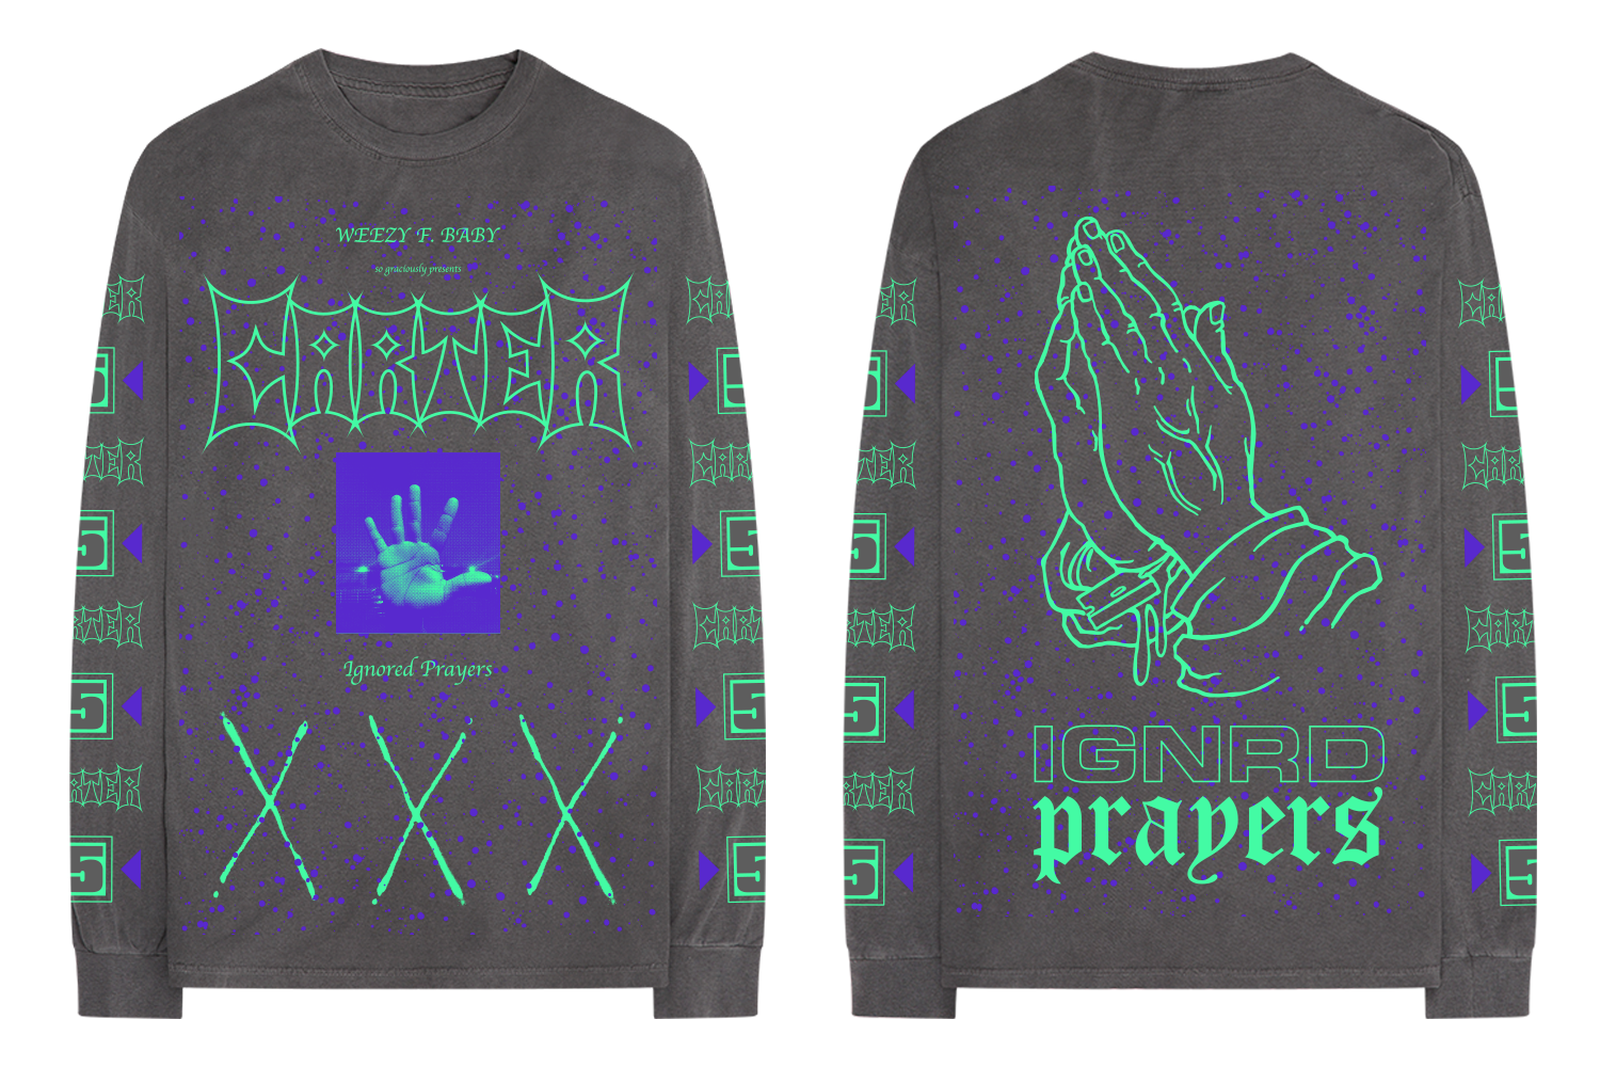 lil wayne carter v 5 merch ignored prayers Tha Carter V bravado